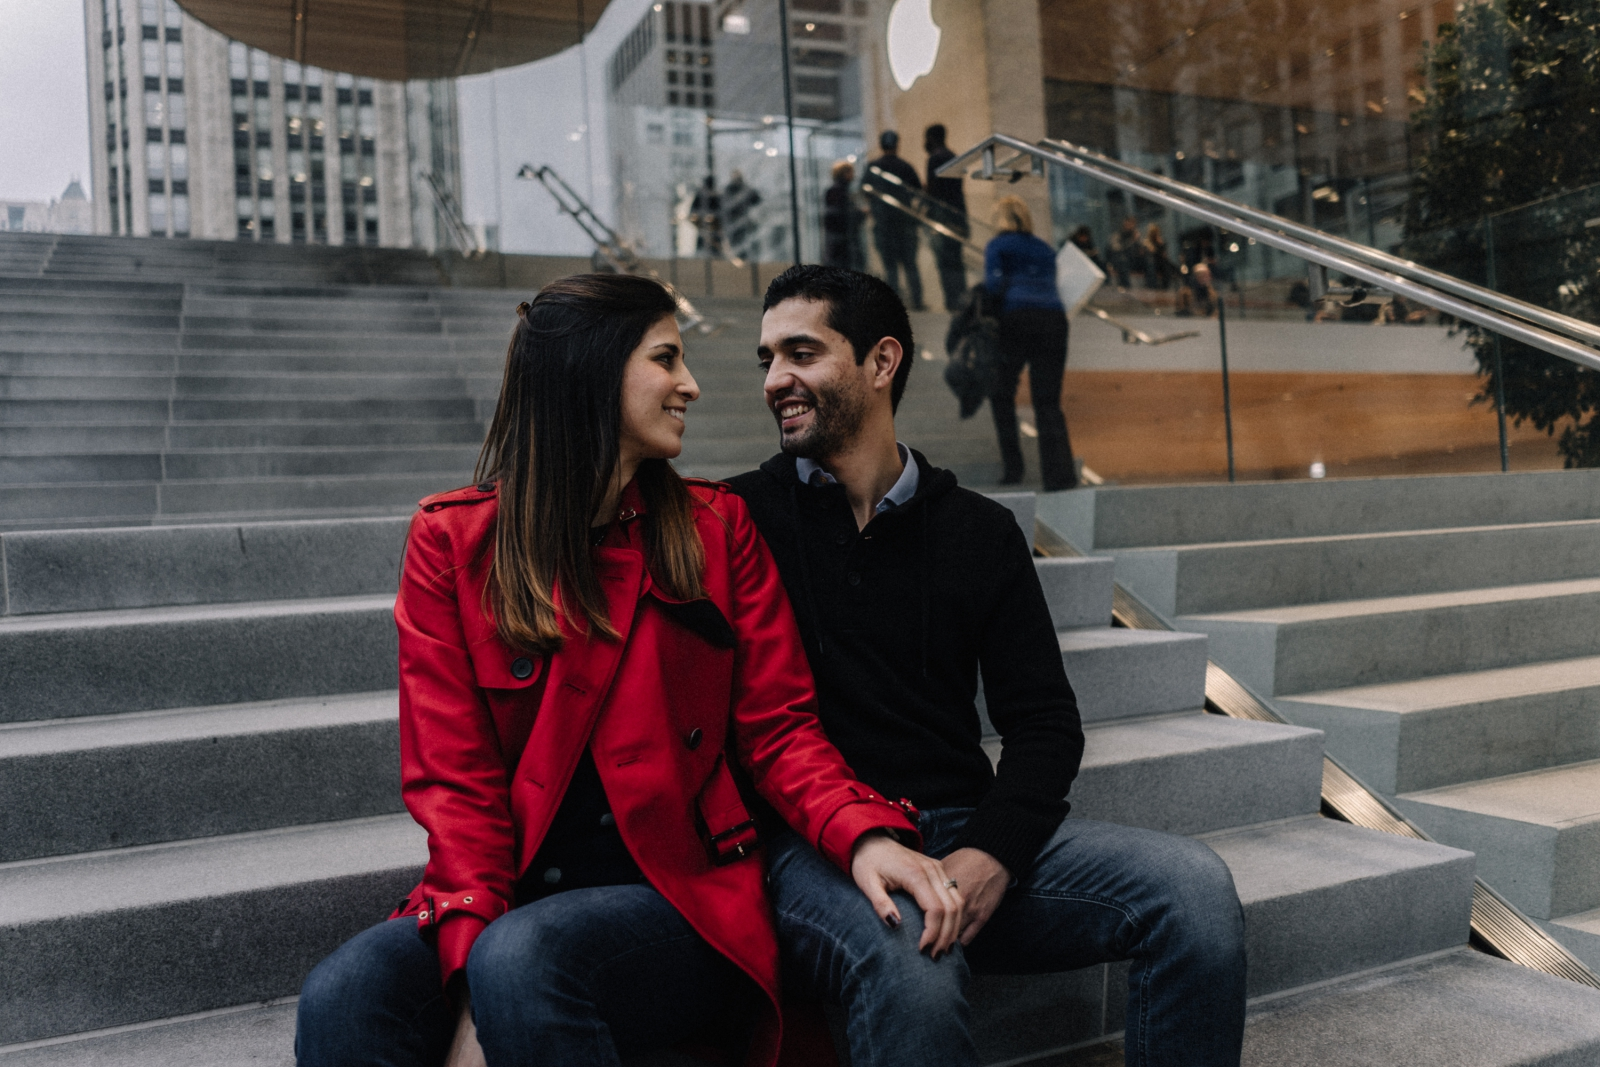 couple at apple store apple store | Chicago vacation photography | lisa kathan photography